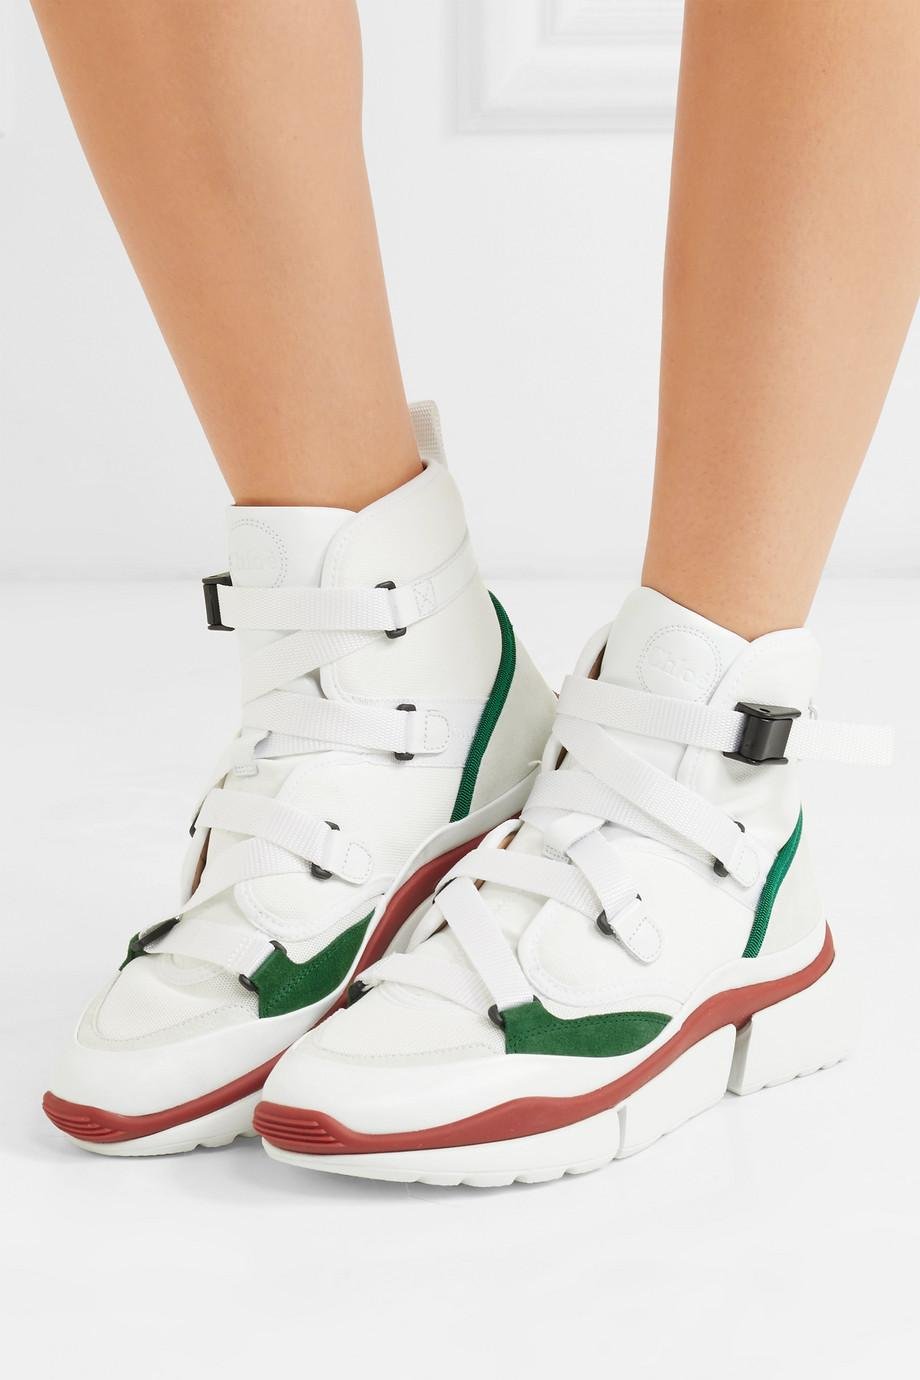 chloe-white-Sonnie-Canvas-Mesh-Suede-And-Leather-High-top-Sneakers.jpeg